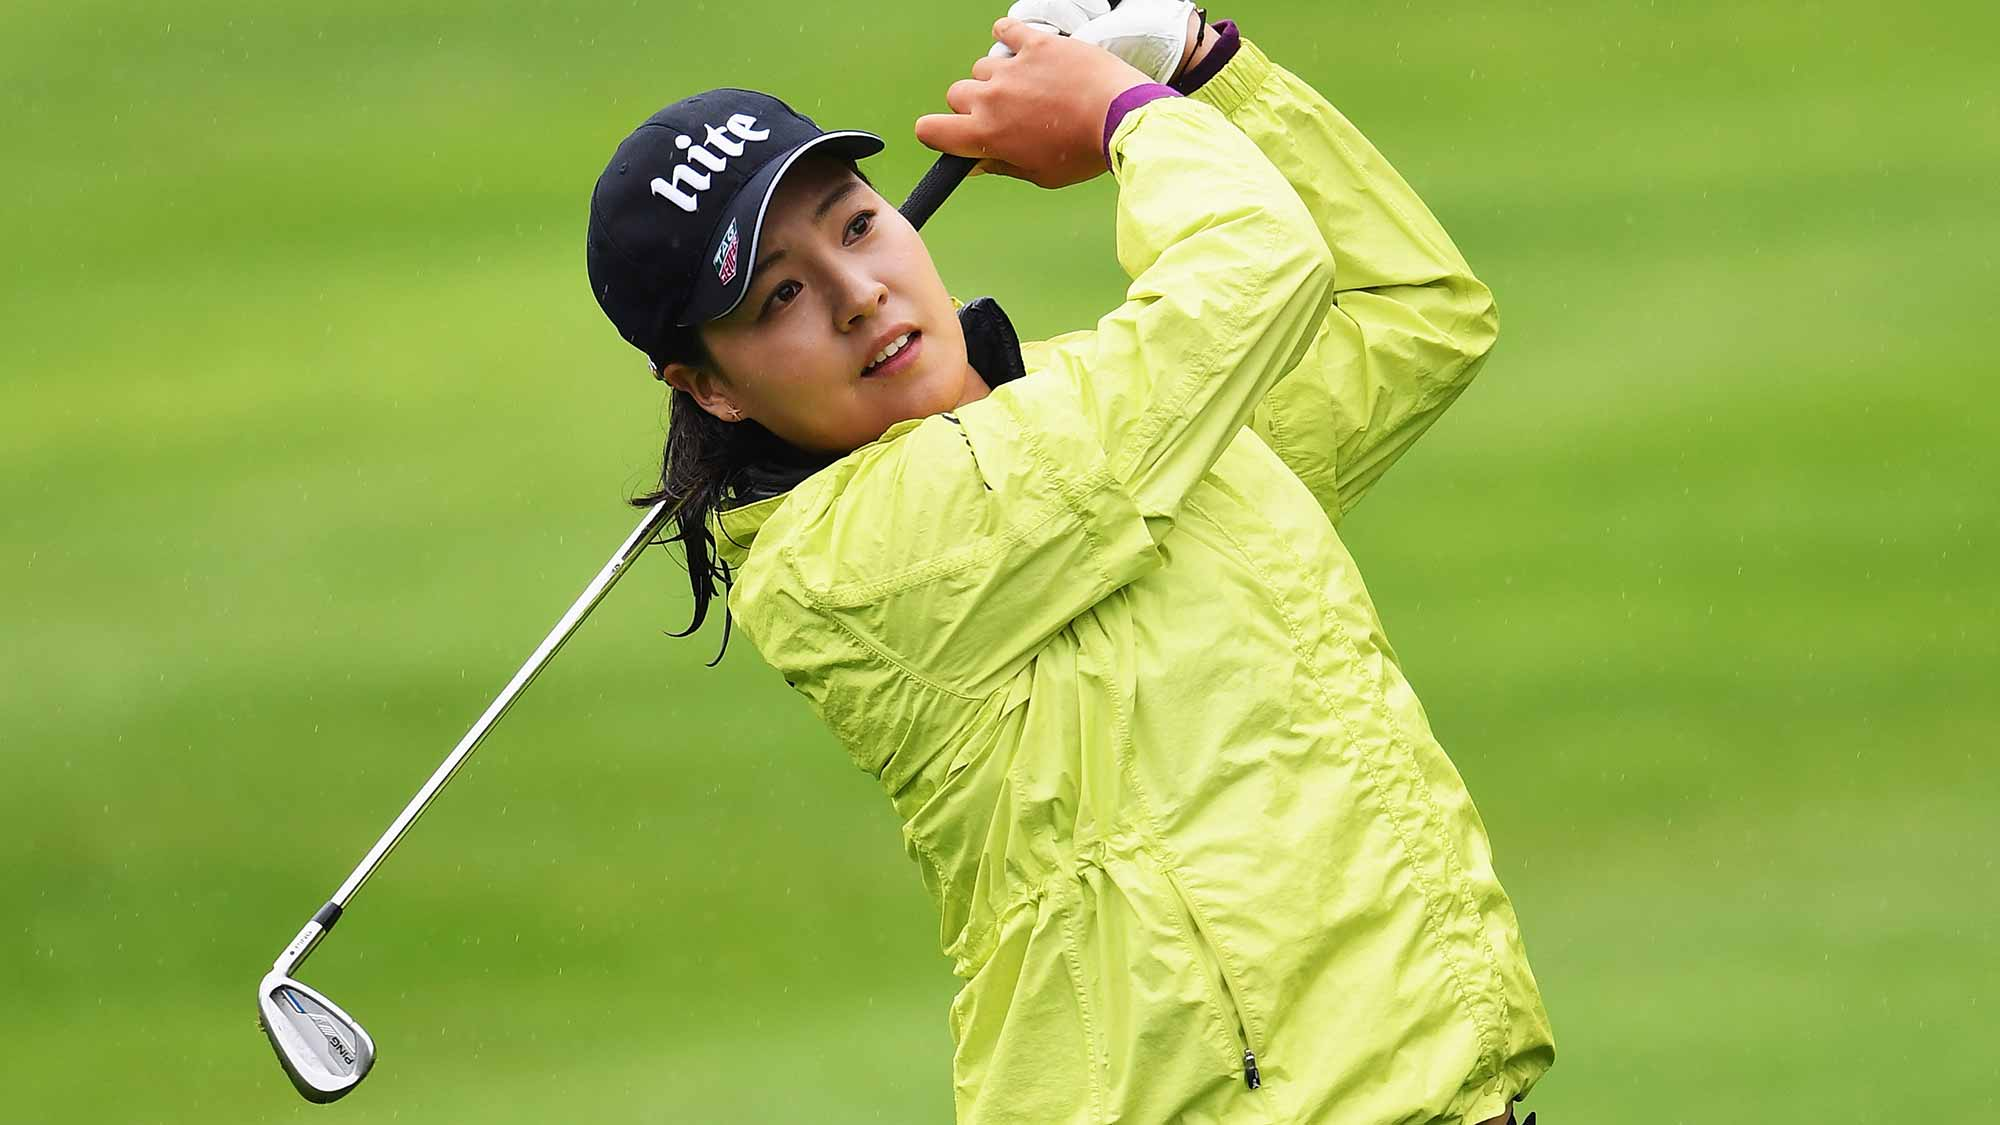 In Gee Chun of Korea plays a shot during the final round of The Evian Championship